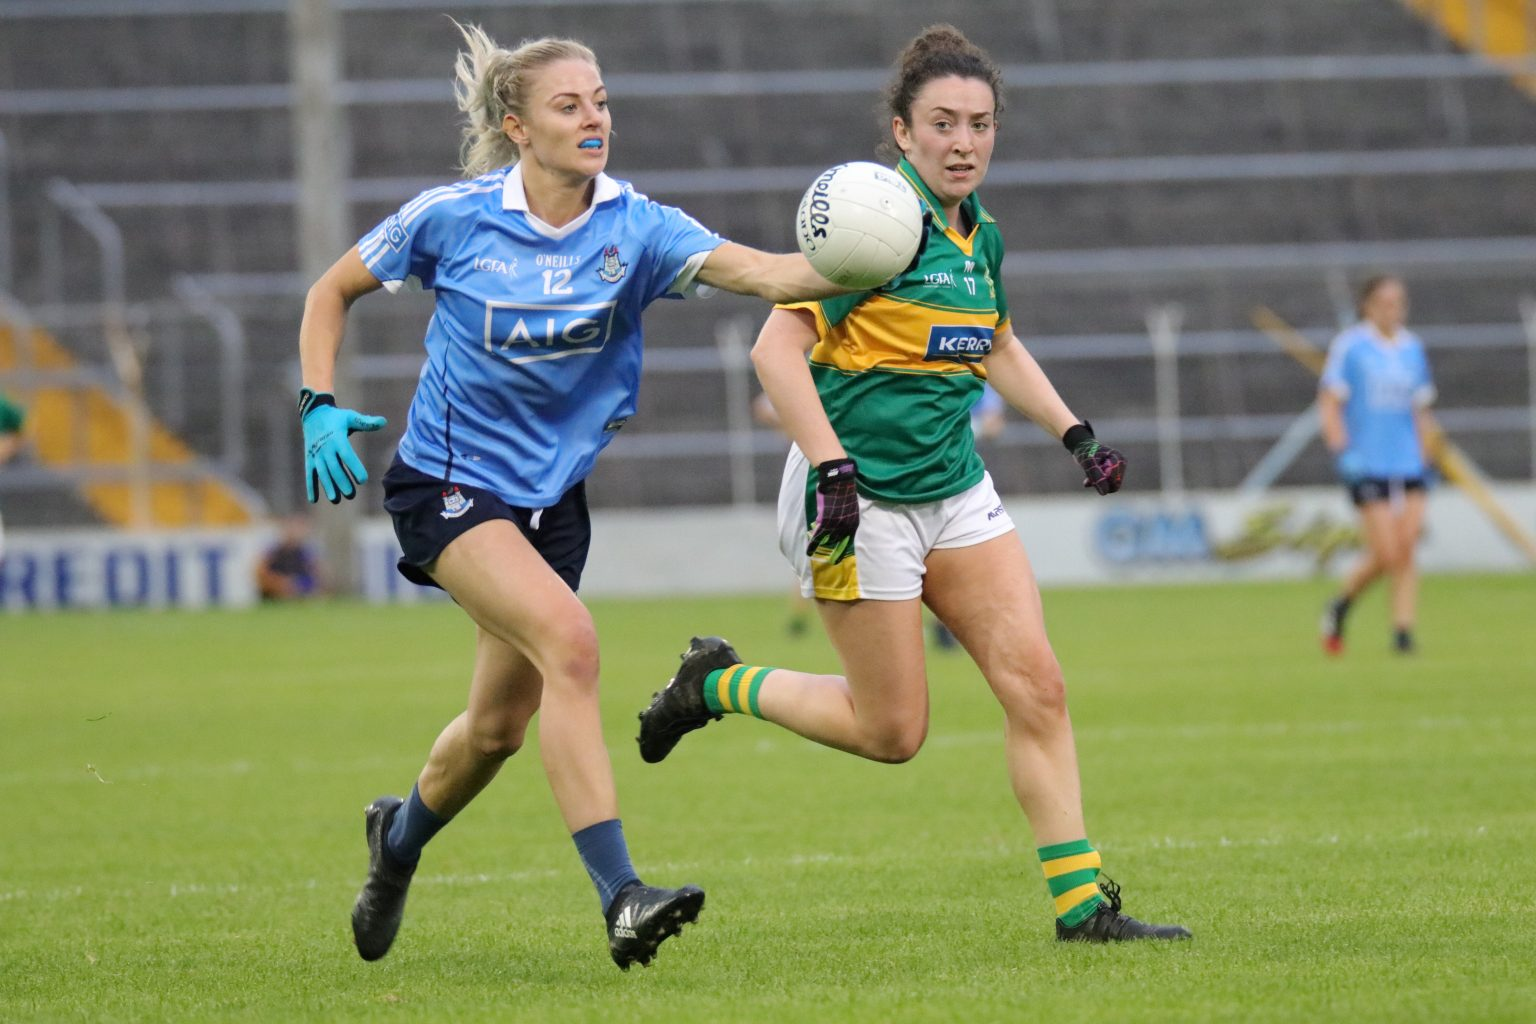 Dublin Ladies footballer in a sky blue jersey and navy shorts running with the ball believes Dublin are in a good place heading into quarter final